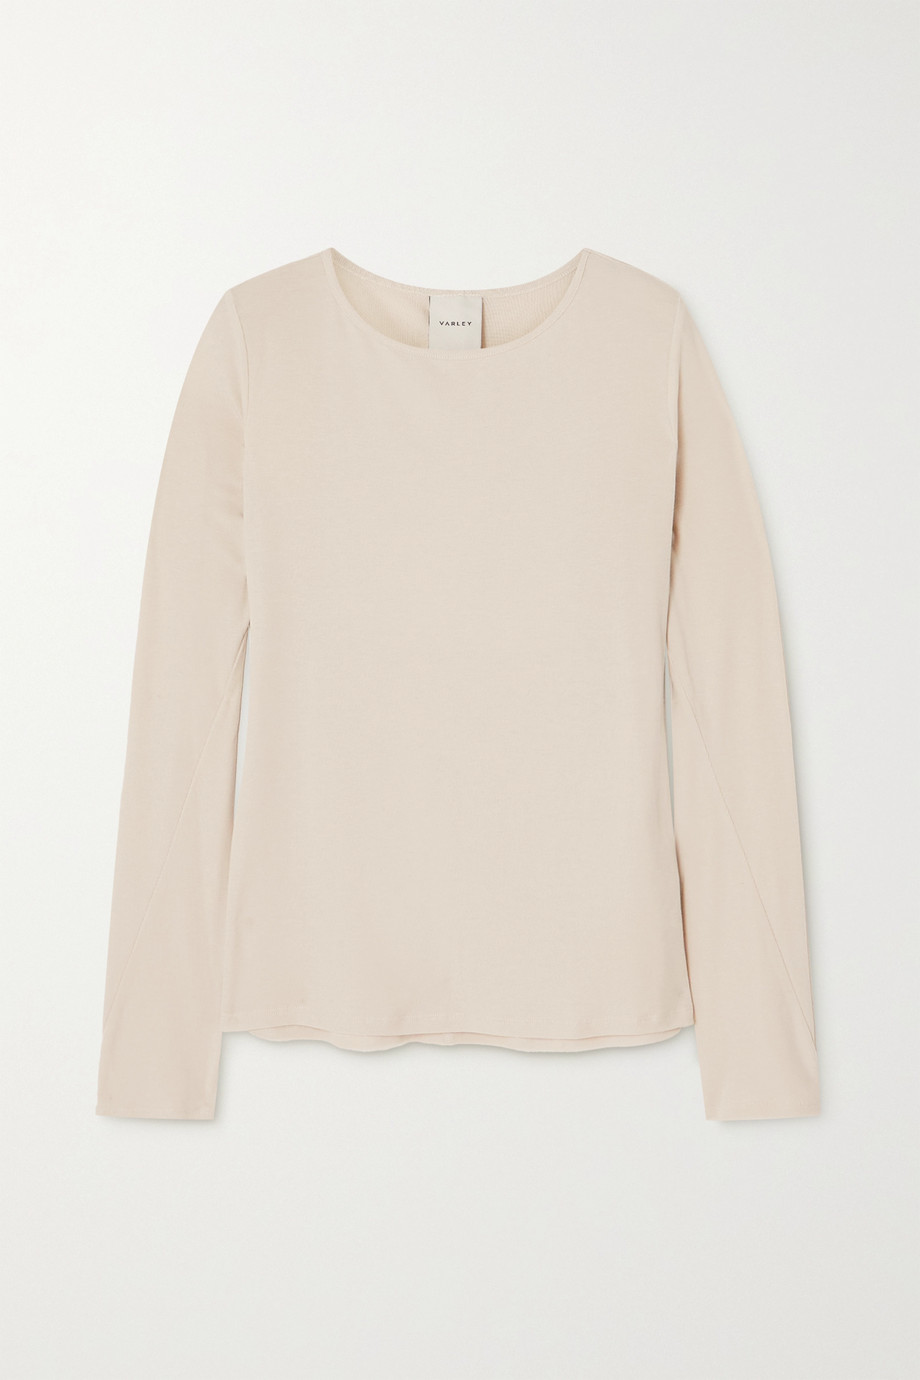 Varley Astoria ribbed TENCEL™ Lyocell and linen-blend top